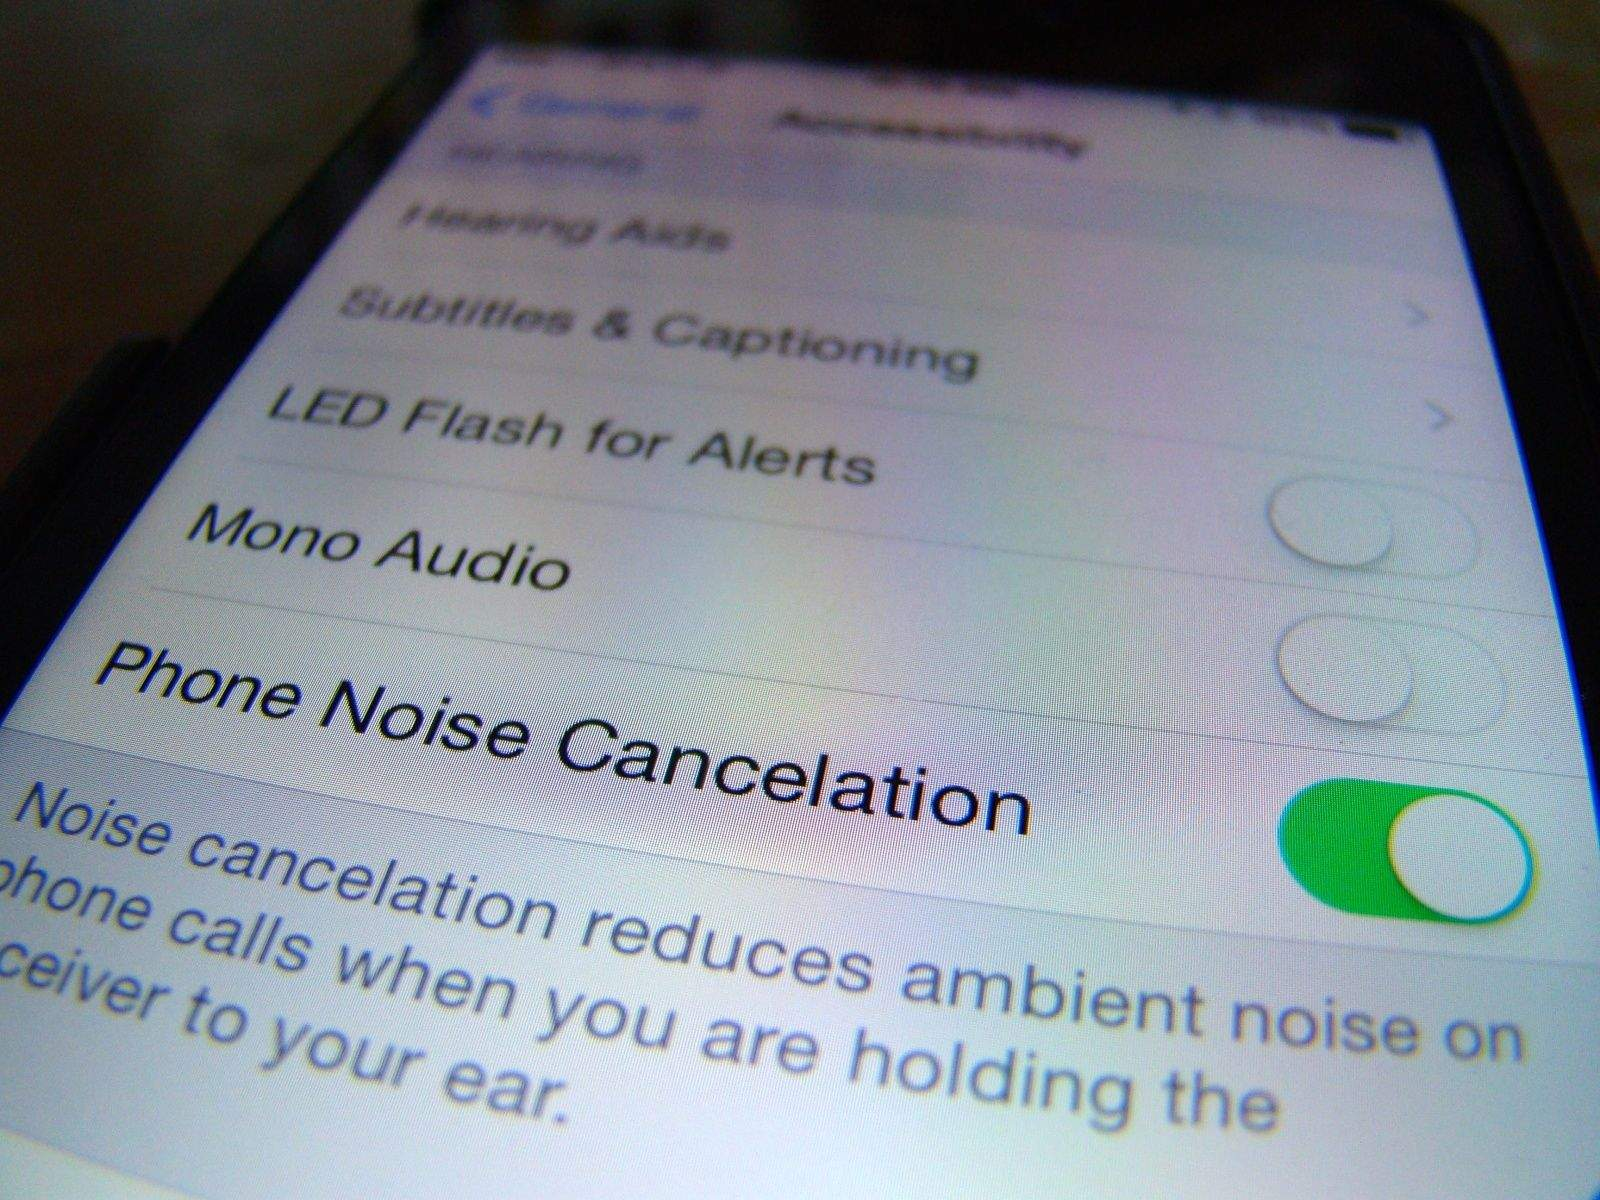 How to activate noise cancelation on the iPhone?